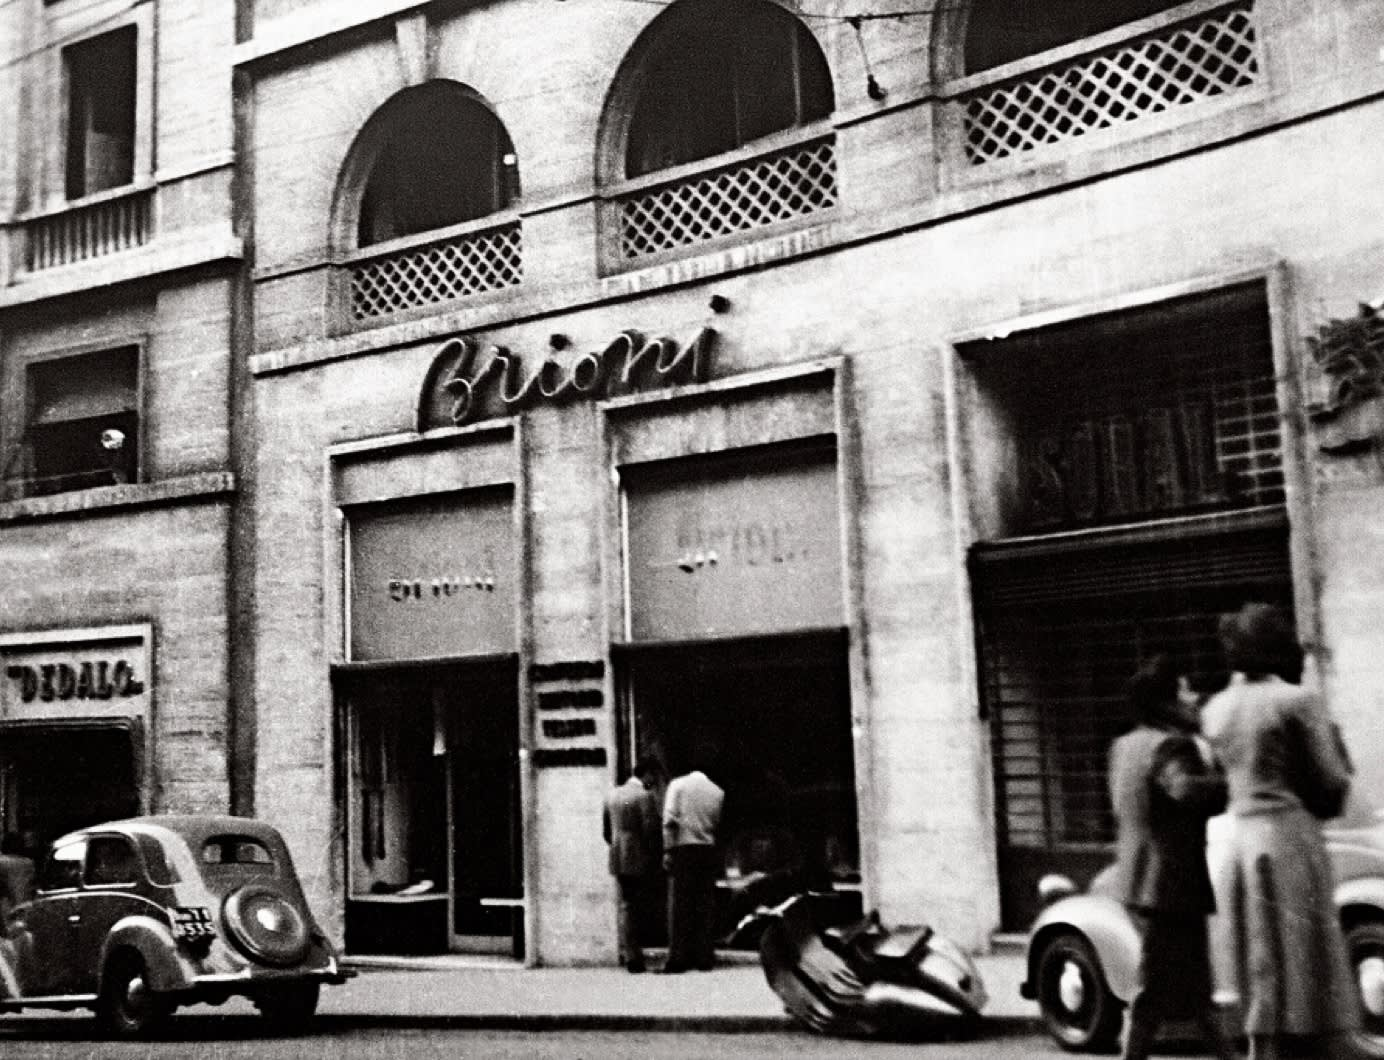 Brioni first store on Via Barberini 79, Rome